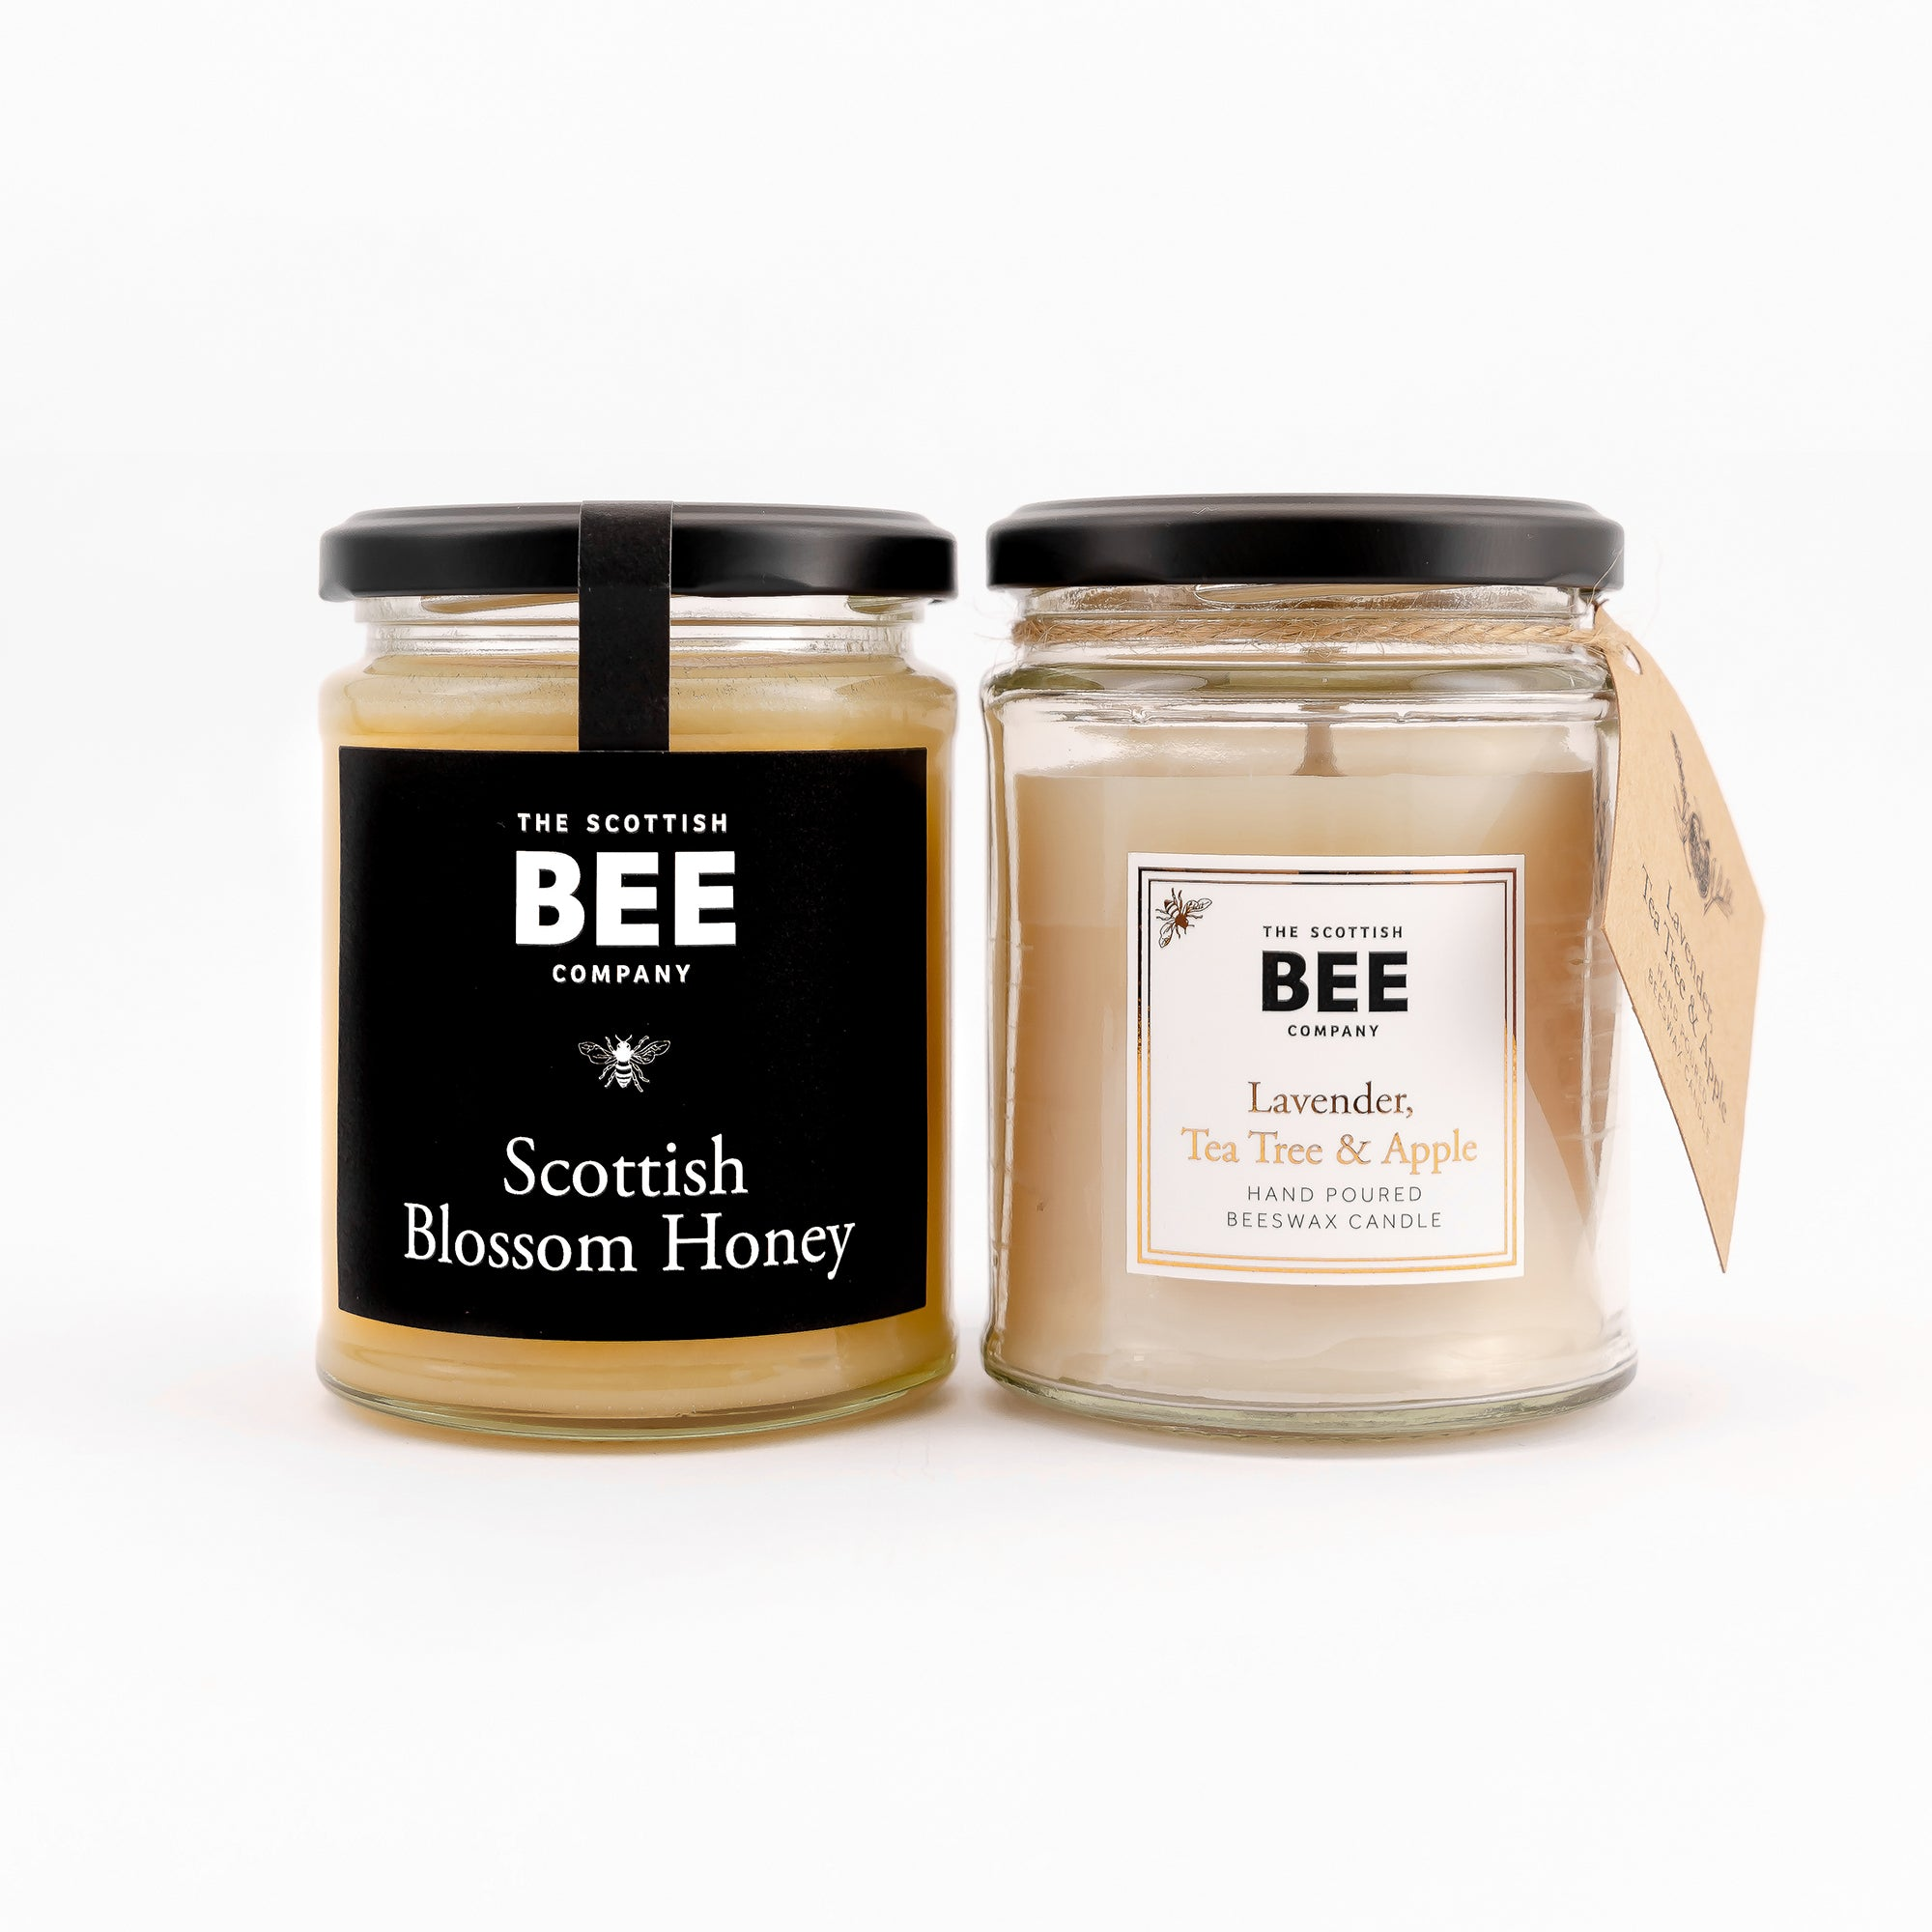 A jar of Scottish Blossom Honey and a scented beeswax candle